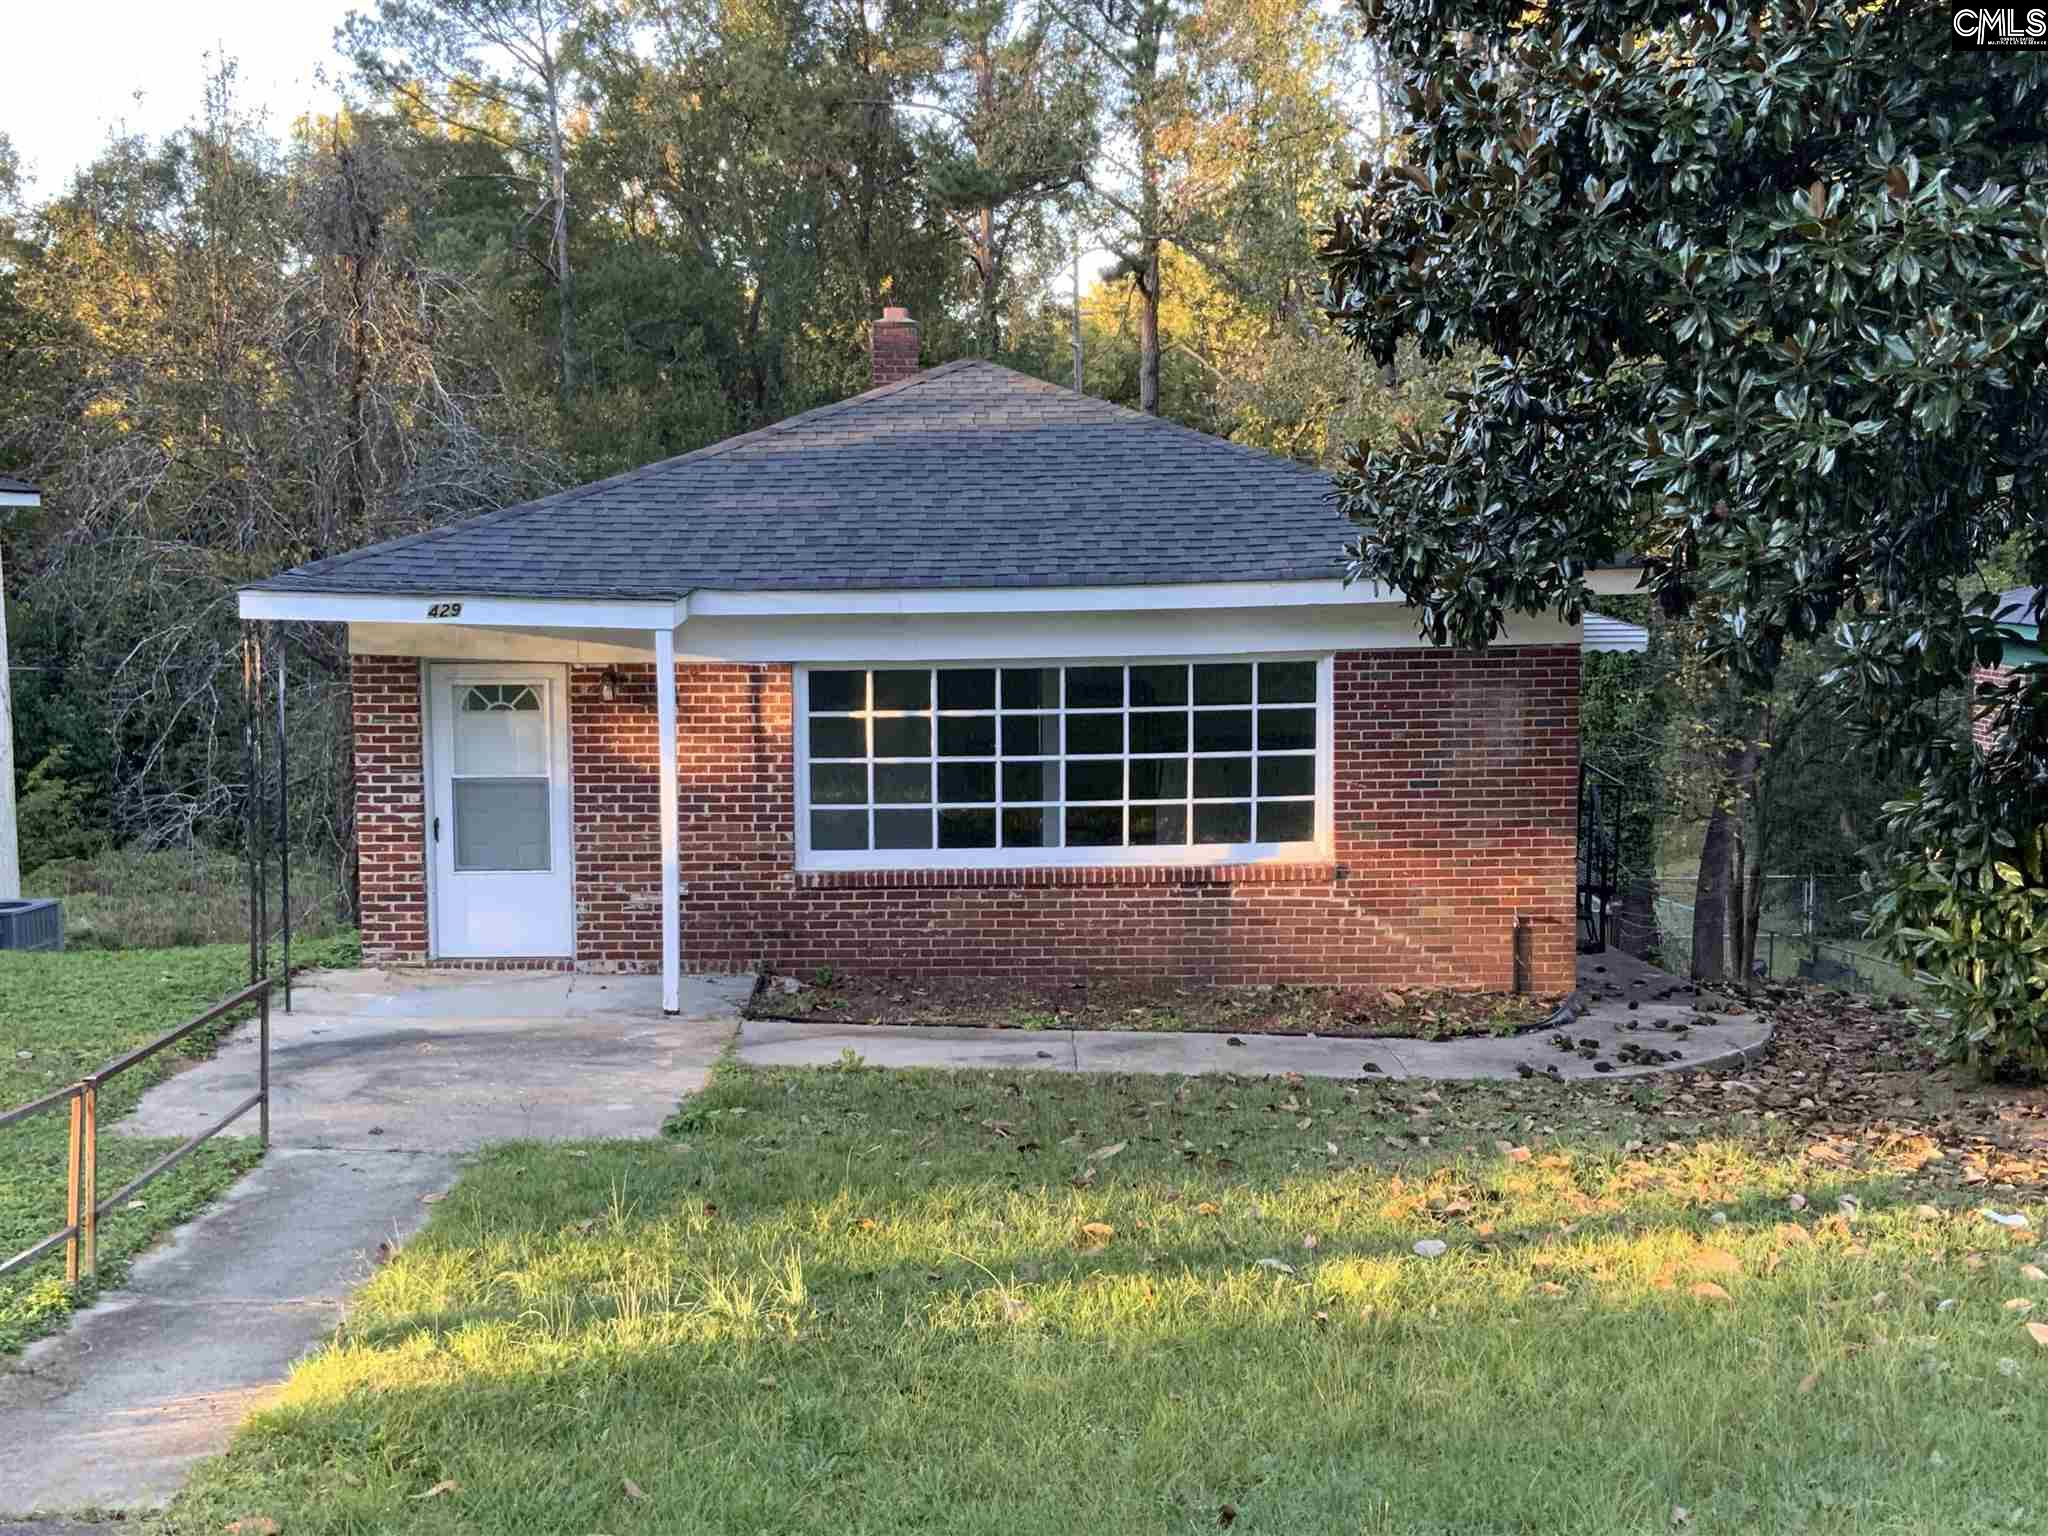 429 Wildwood Columbia, SC 29203